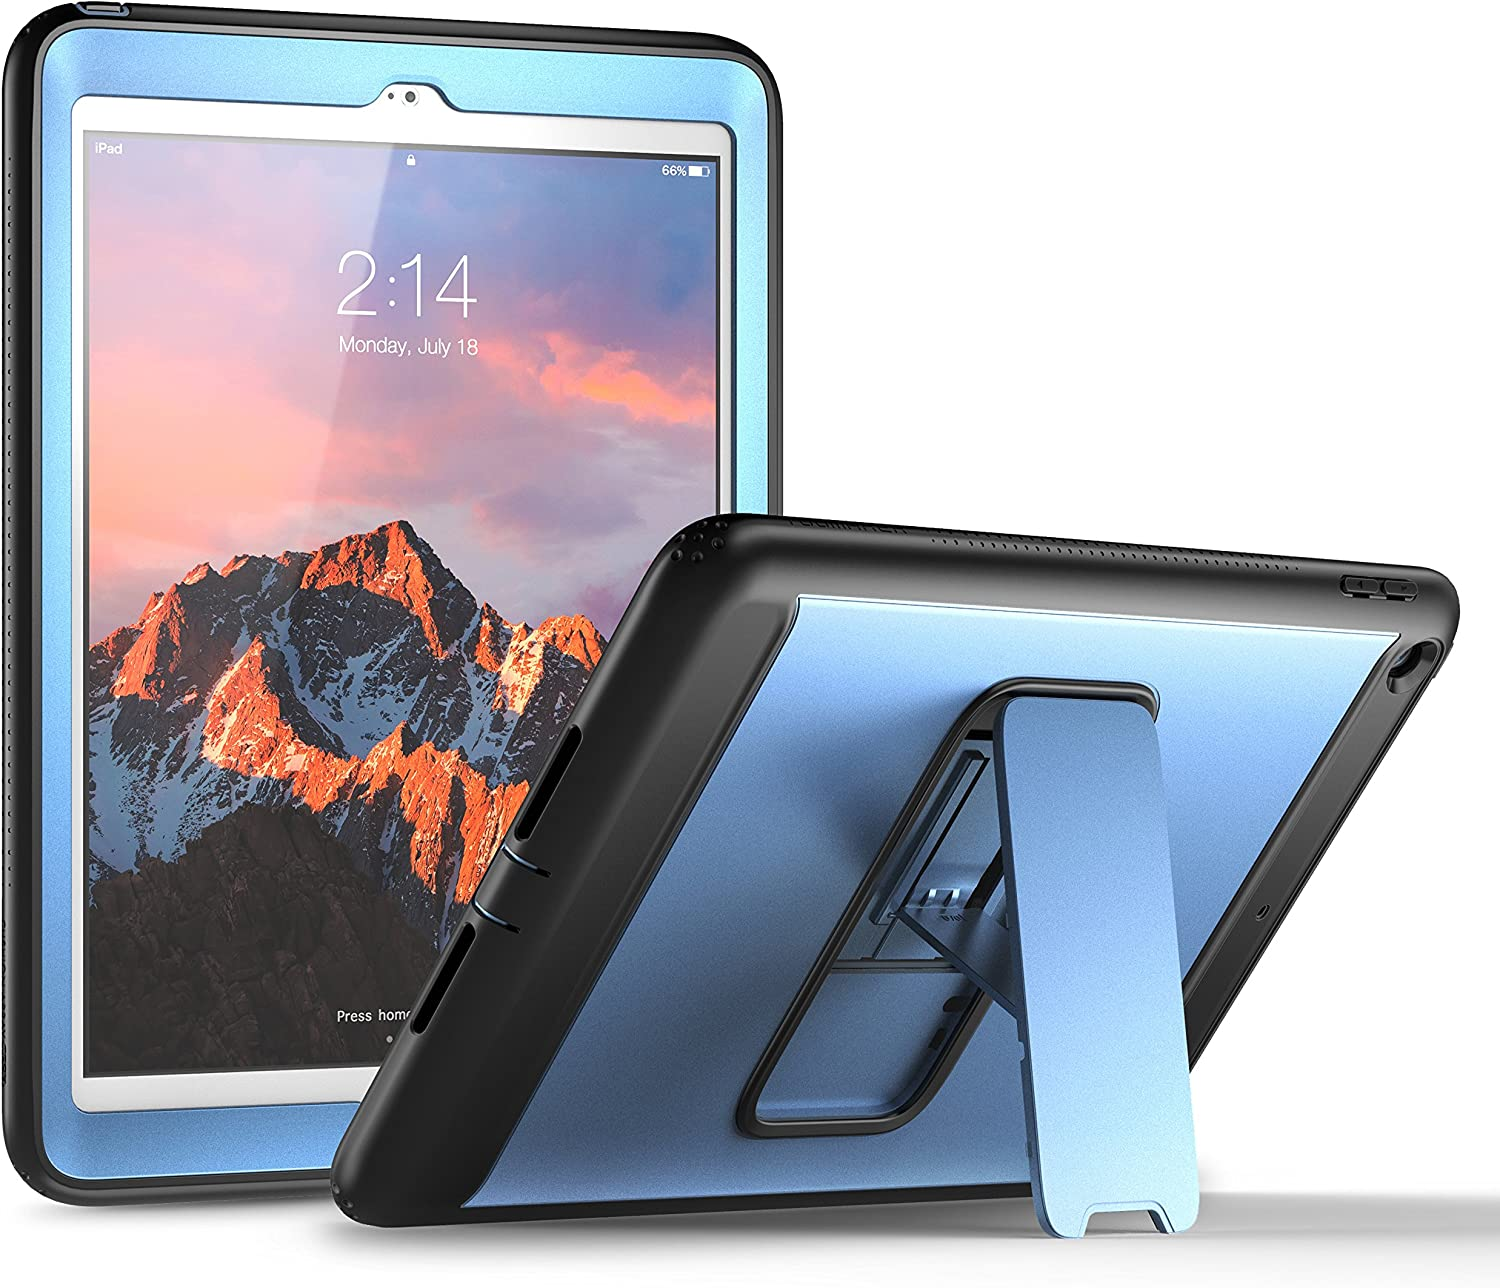 YOUMAKER New iPad 9.7 Case 2018/2017, Heavy Duty Kickstand with Built-in Screen Protector Full-body Shockproof Protective Case Cover for Apple iPad 9.7 inch 2017/2018 5th/6th Gen (Blue/Black)